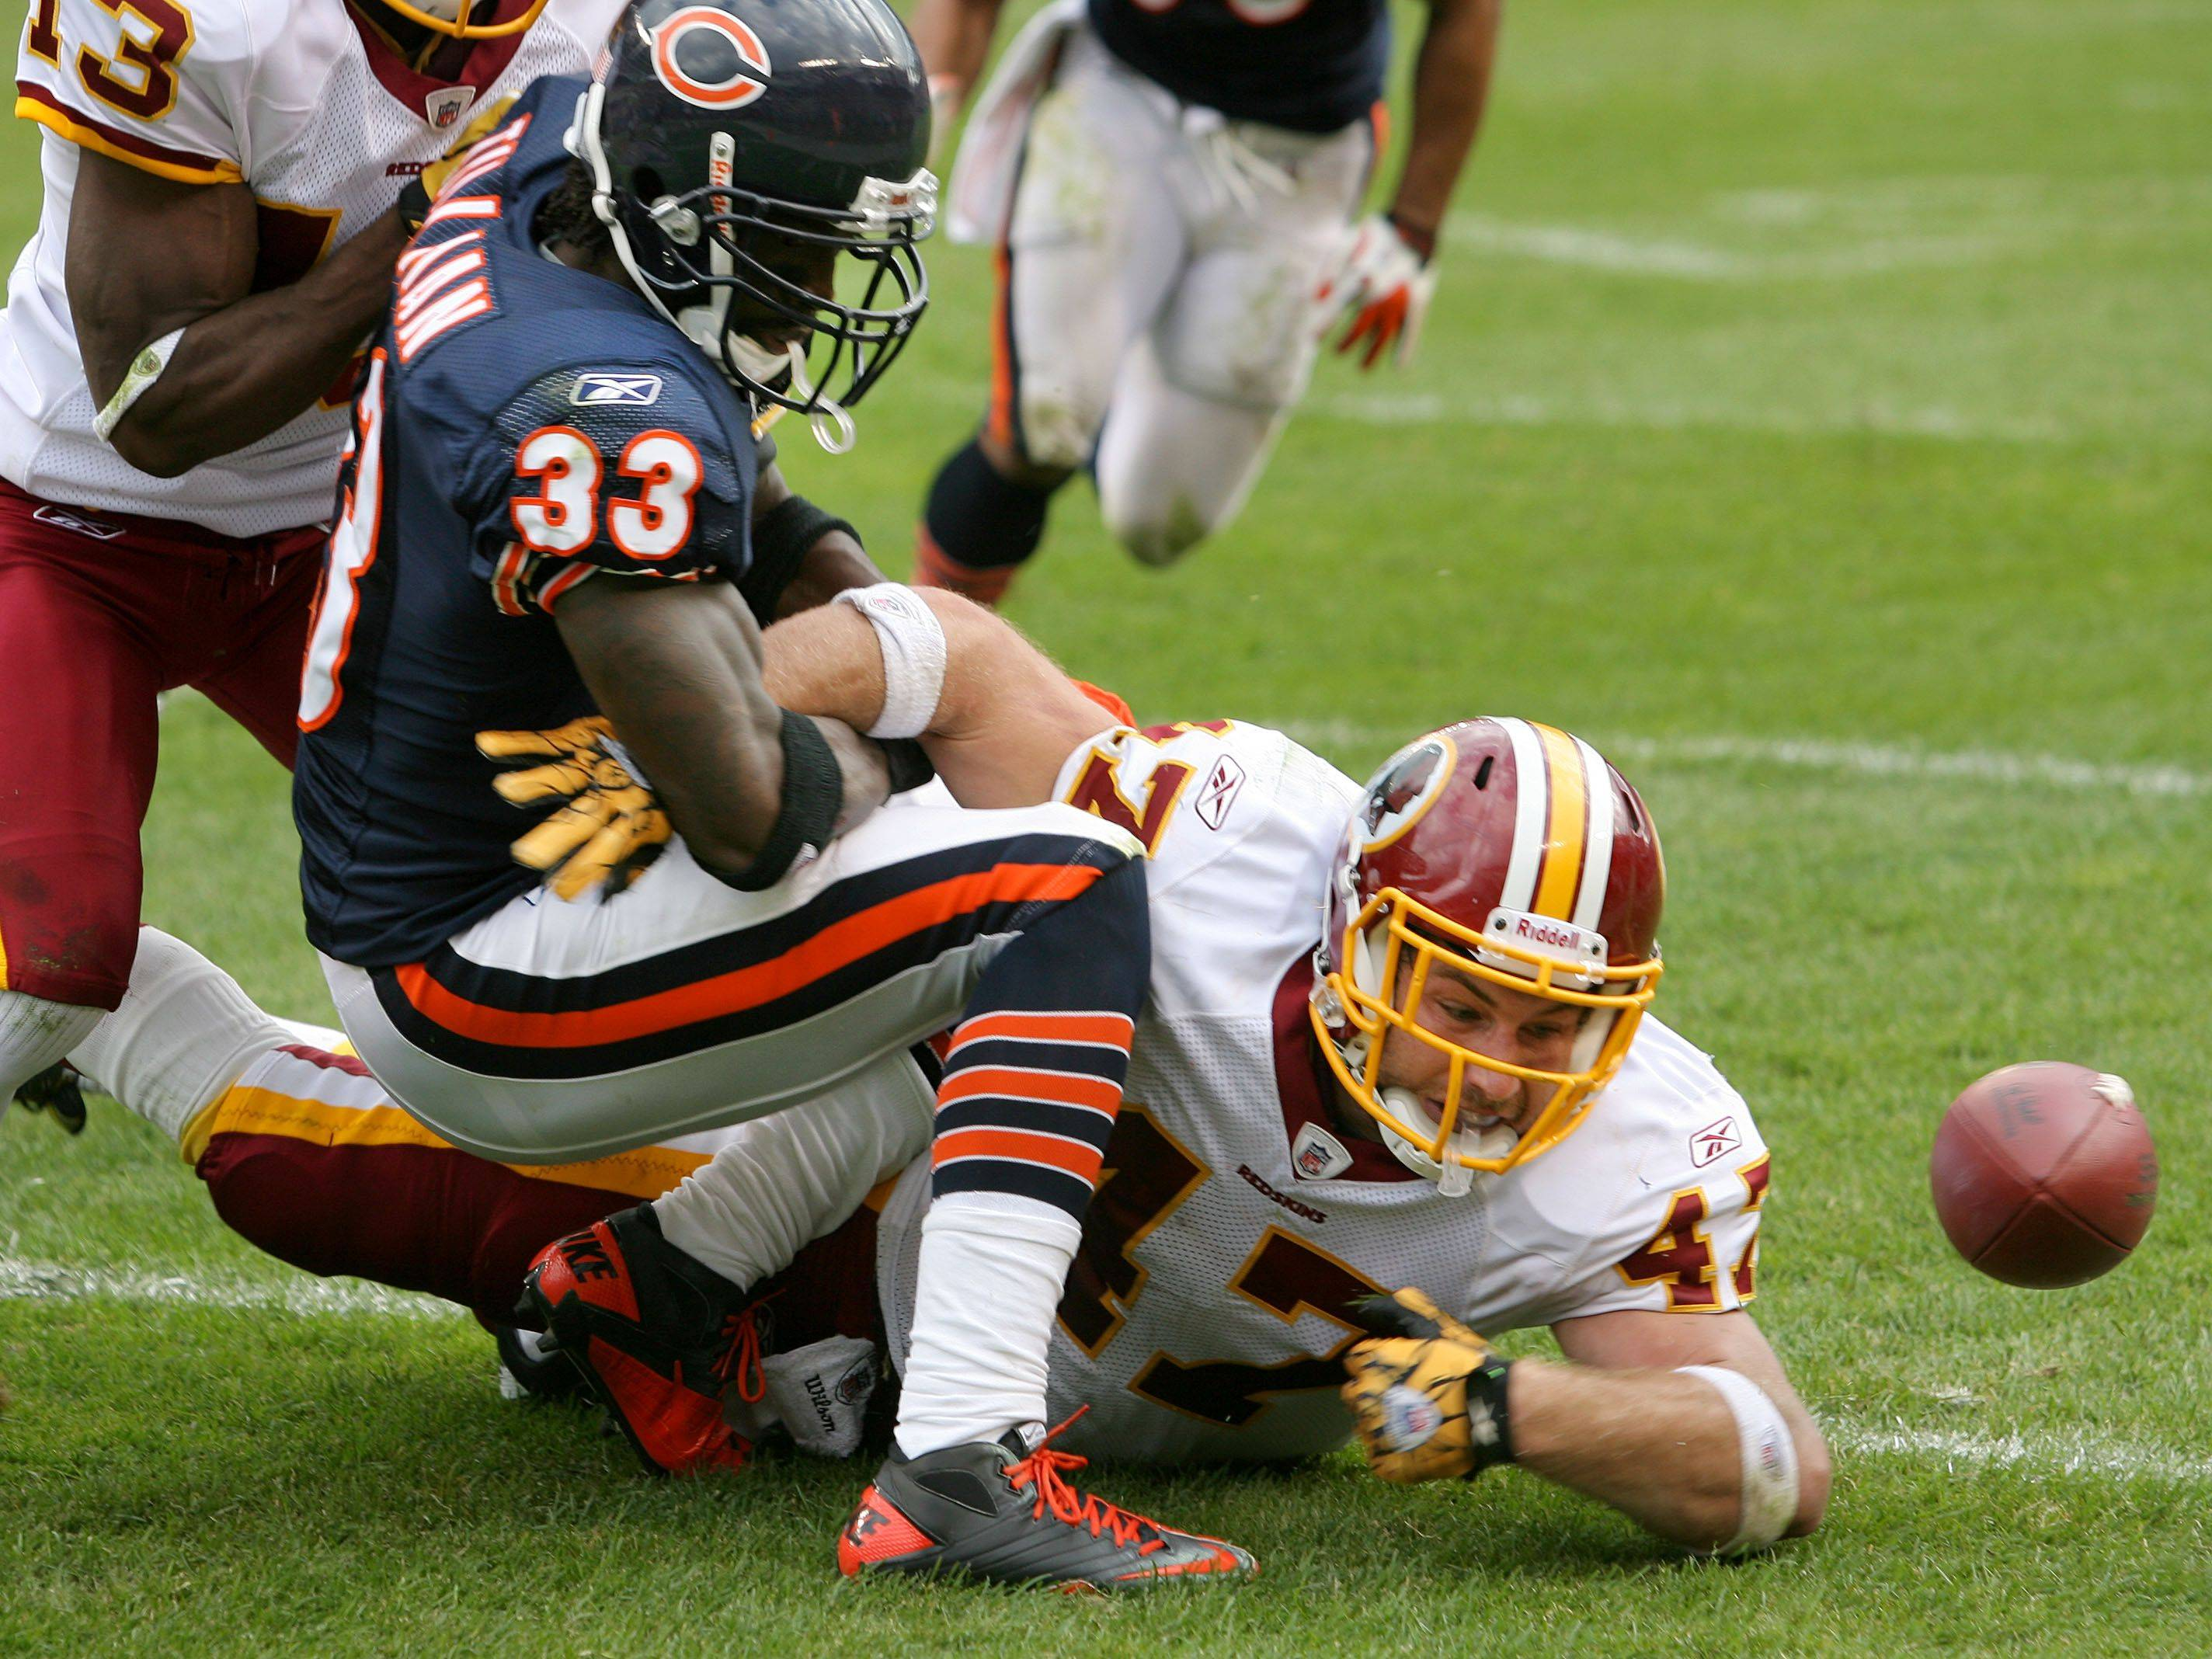 Washington Redskins tight end Chris Cooley tries to bat a fumble out of bounds after Chicago Bears cornerback Charles Tillman forced a fumble during the Bears' 14-17 loss to the Redskins.